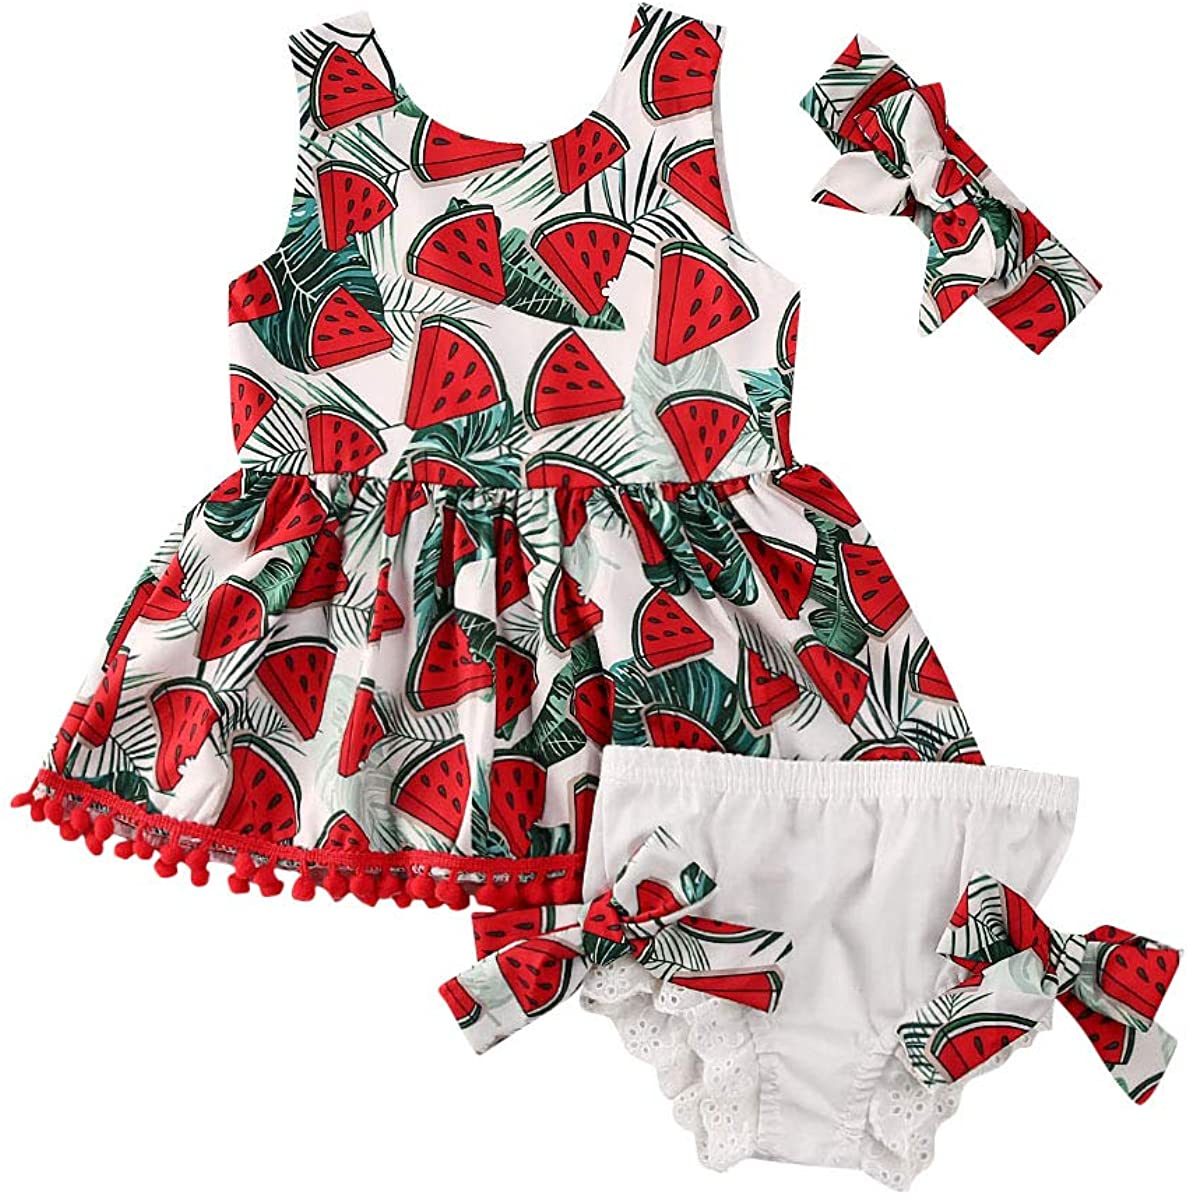 3Pcs Toddler Baby Kids Girl Clothes Watermelon Tassel Tutu Sleeveless Vest Tops Bow Shorts Pants Headband Outfit Set